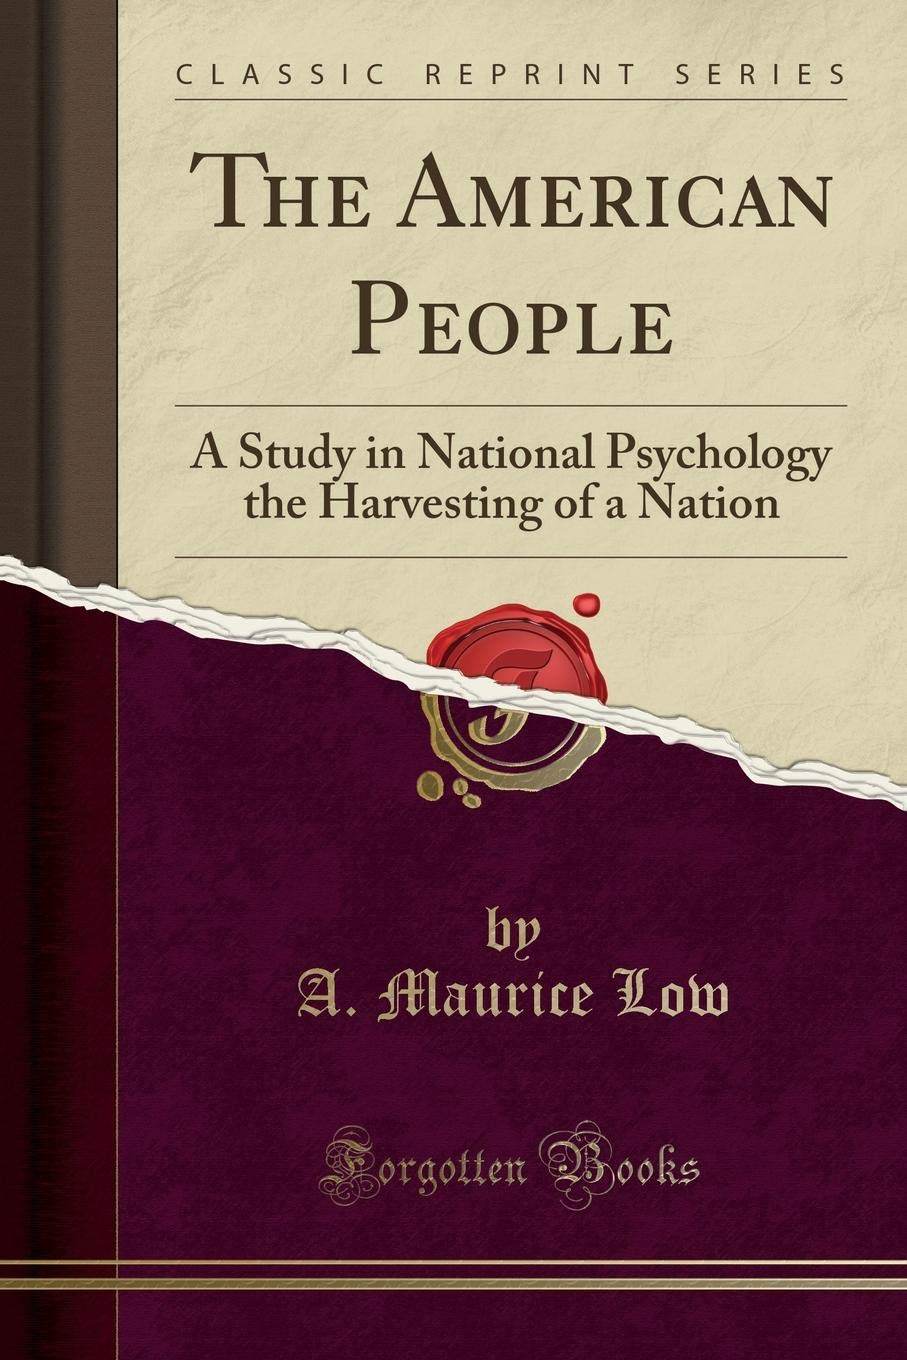 The American People: A Study in National Psychology the Harvesting of a Nation (Classic Reprint) ebook